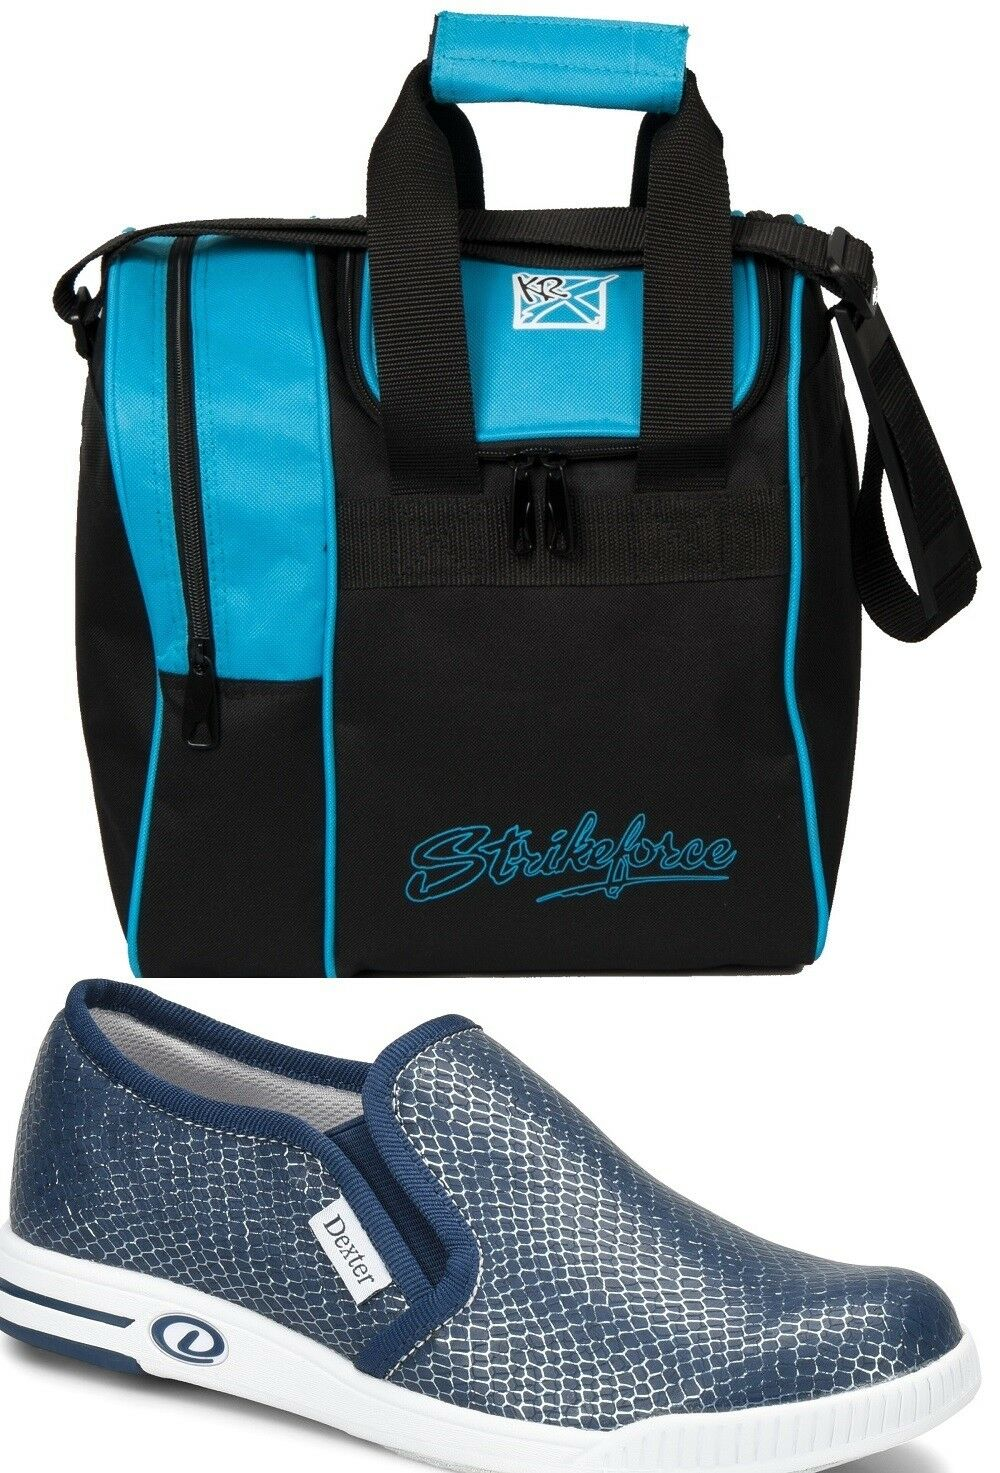 Womens Dexter SUZANA  Slip On Bowling shoes bluee Sizes 6-11 & Aqua 1 Ball Bag